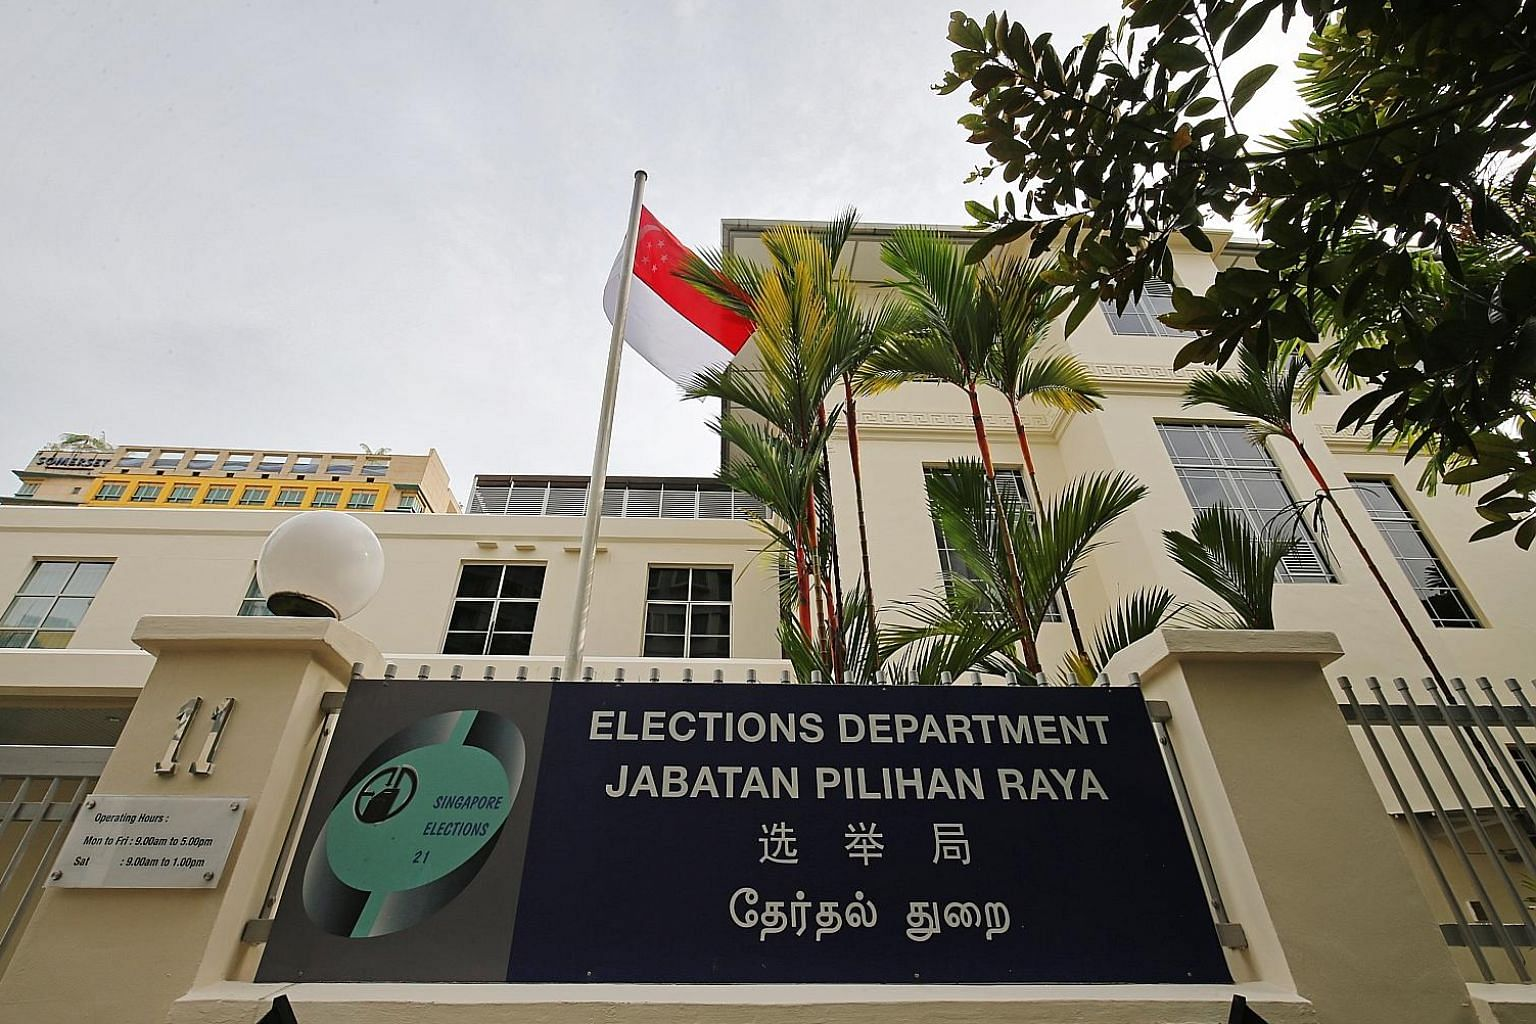 The Elections Department office, now at 11 Prinsep Link (above), has been the hub of administrative matters related to elections for nearly 25 years. The move to Novena Rise (left) will consolidate the department's two sites - the Prinsep office and